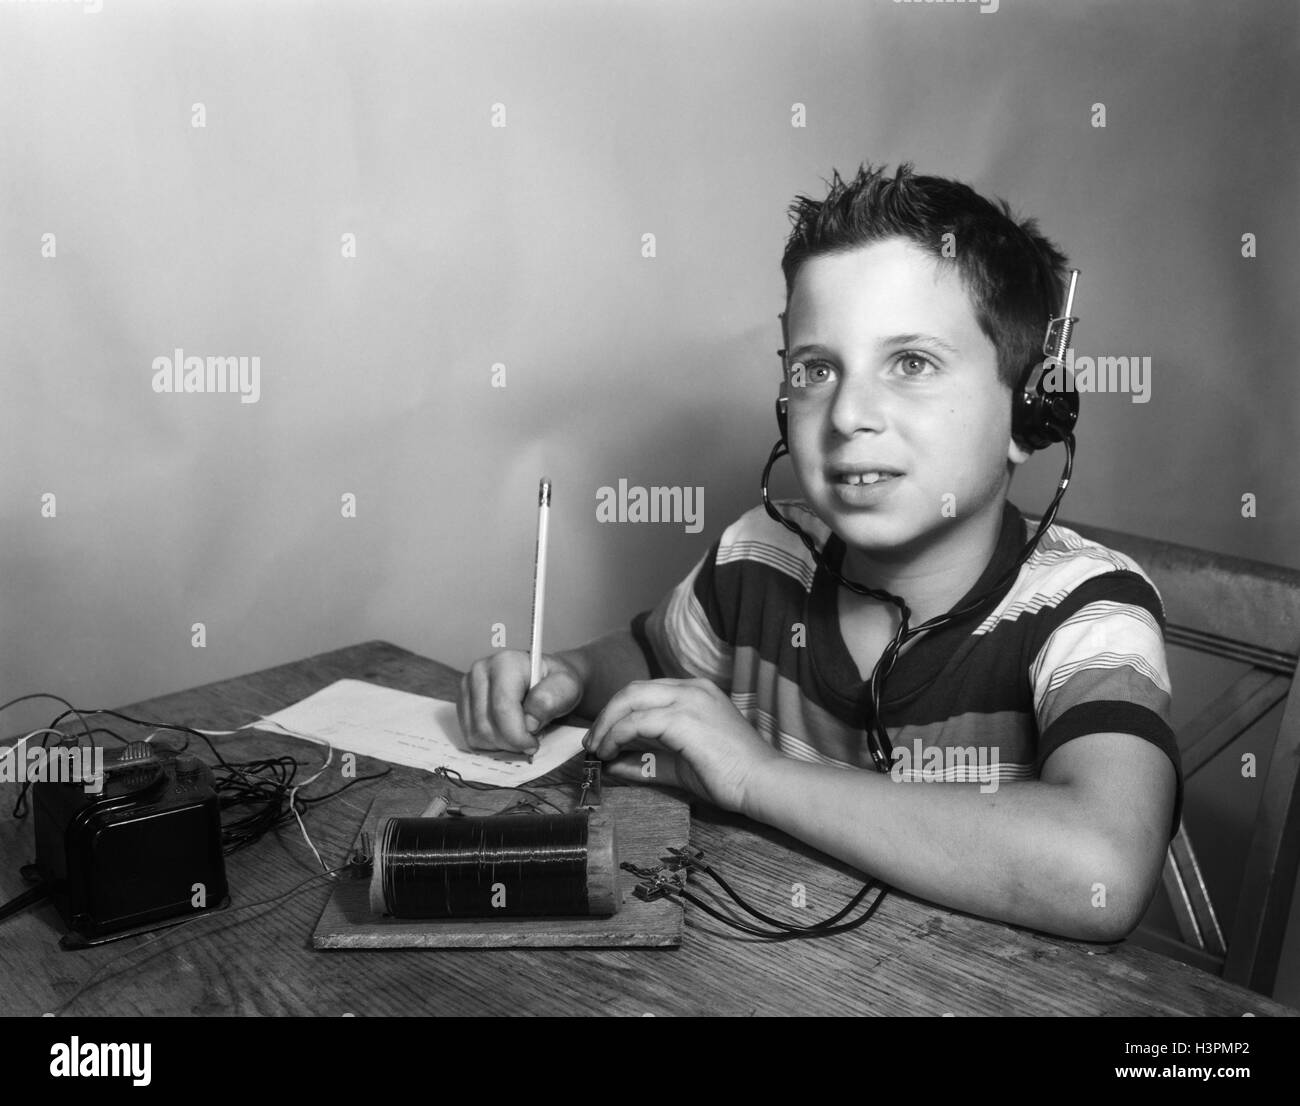 1930s 1940s 1950s YOUNG BOY WEARING HEADPHONES LISTENING TRANSCRIBING MORSE CODE FROM CRYSTAL RADIO - Stock Image